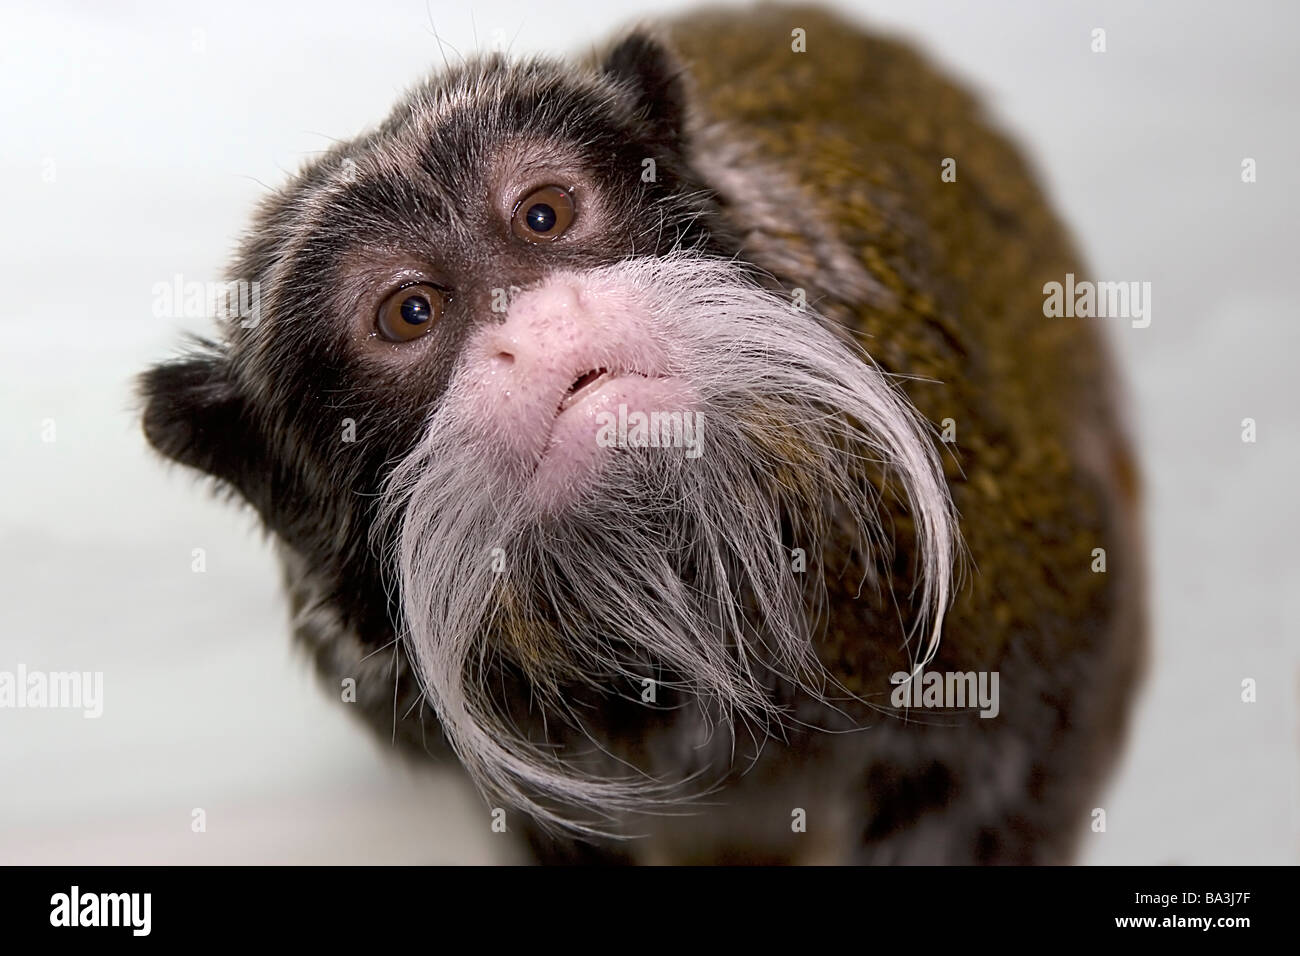 Tamarin empereur cheeky monkey nosey curieux moustache Saguinus imperator Photo Stock